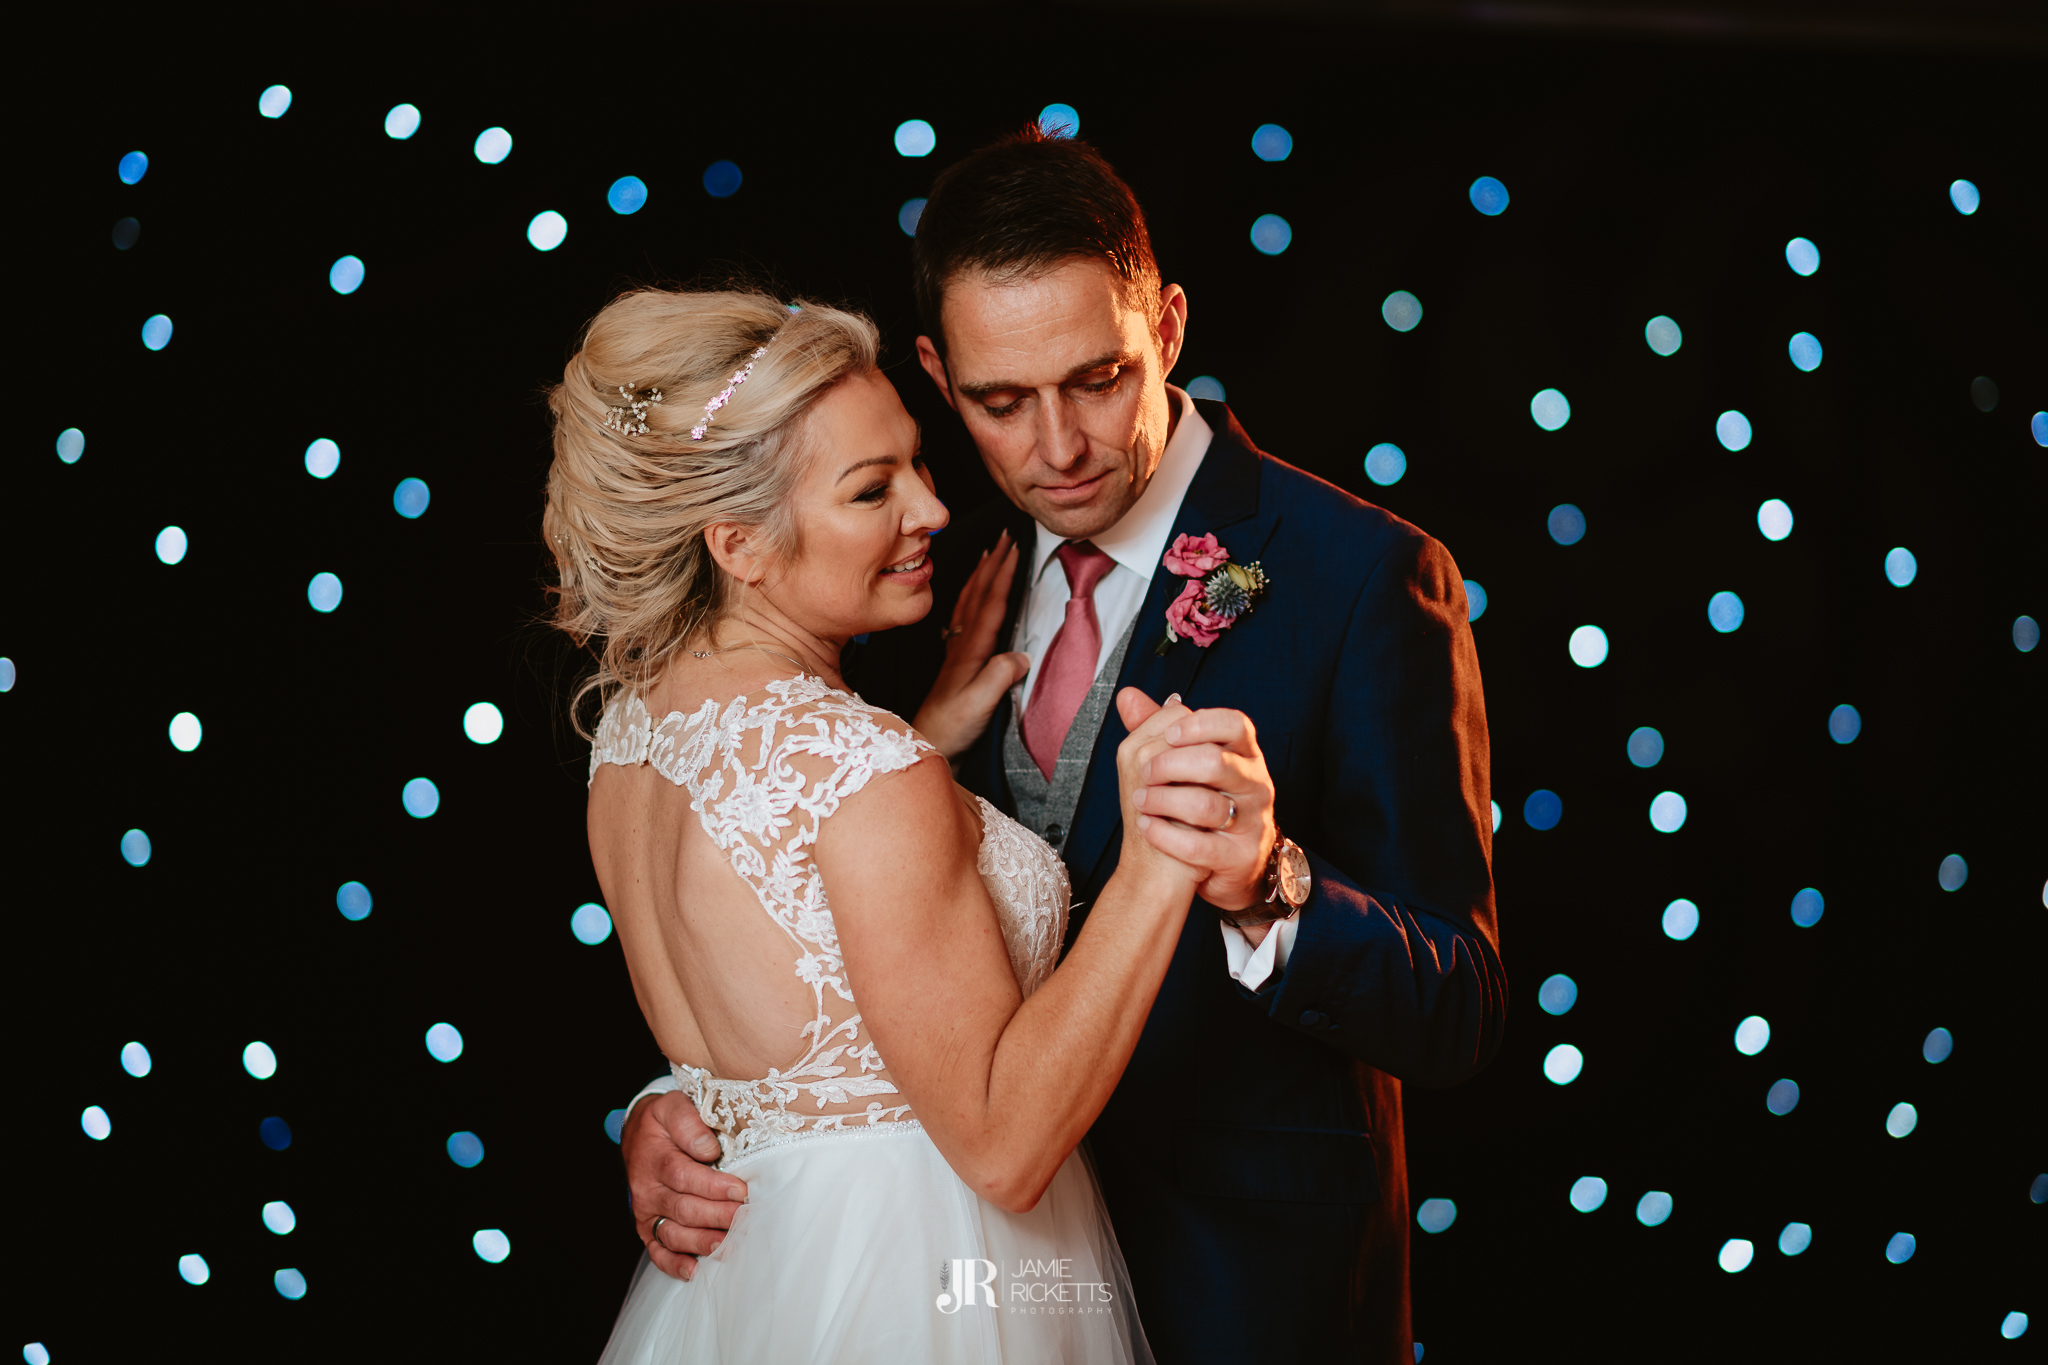 Wroxeter-Hotel-Wedding-Photography-In-Shropshire-By-Shropshire-Wedding-Photographer-Jamie-Ricketts-217.JPG